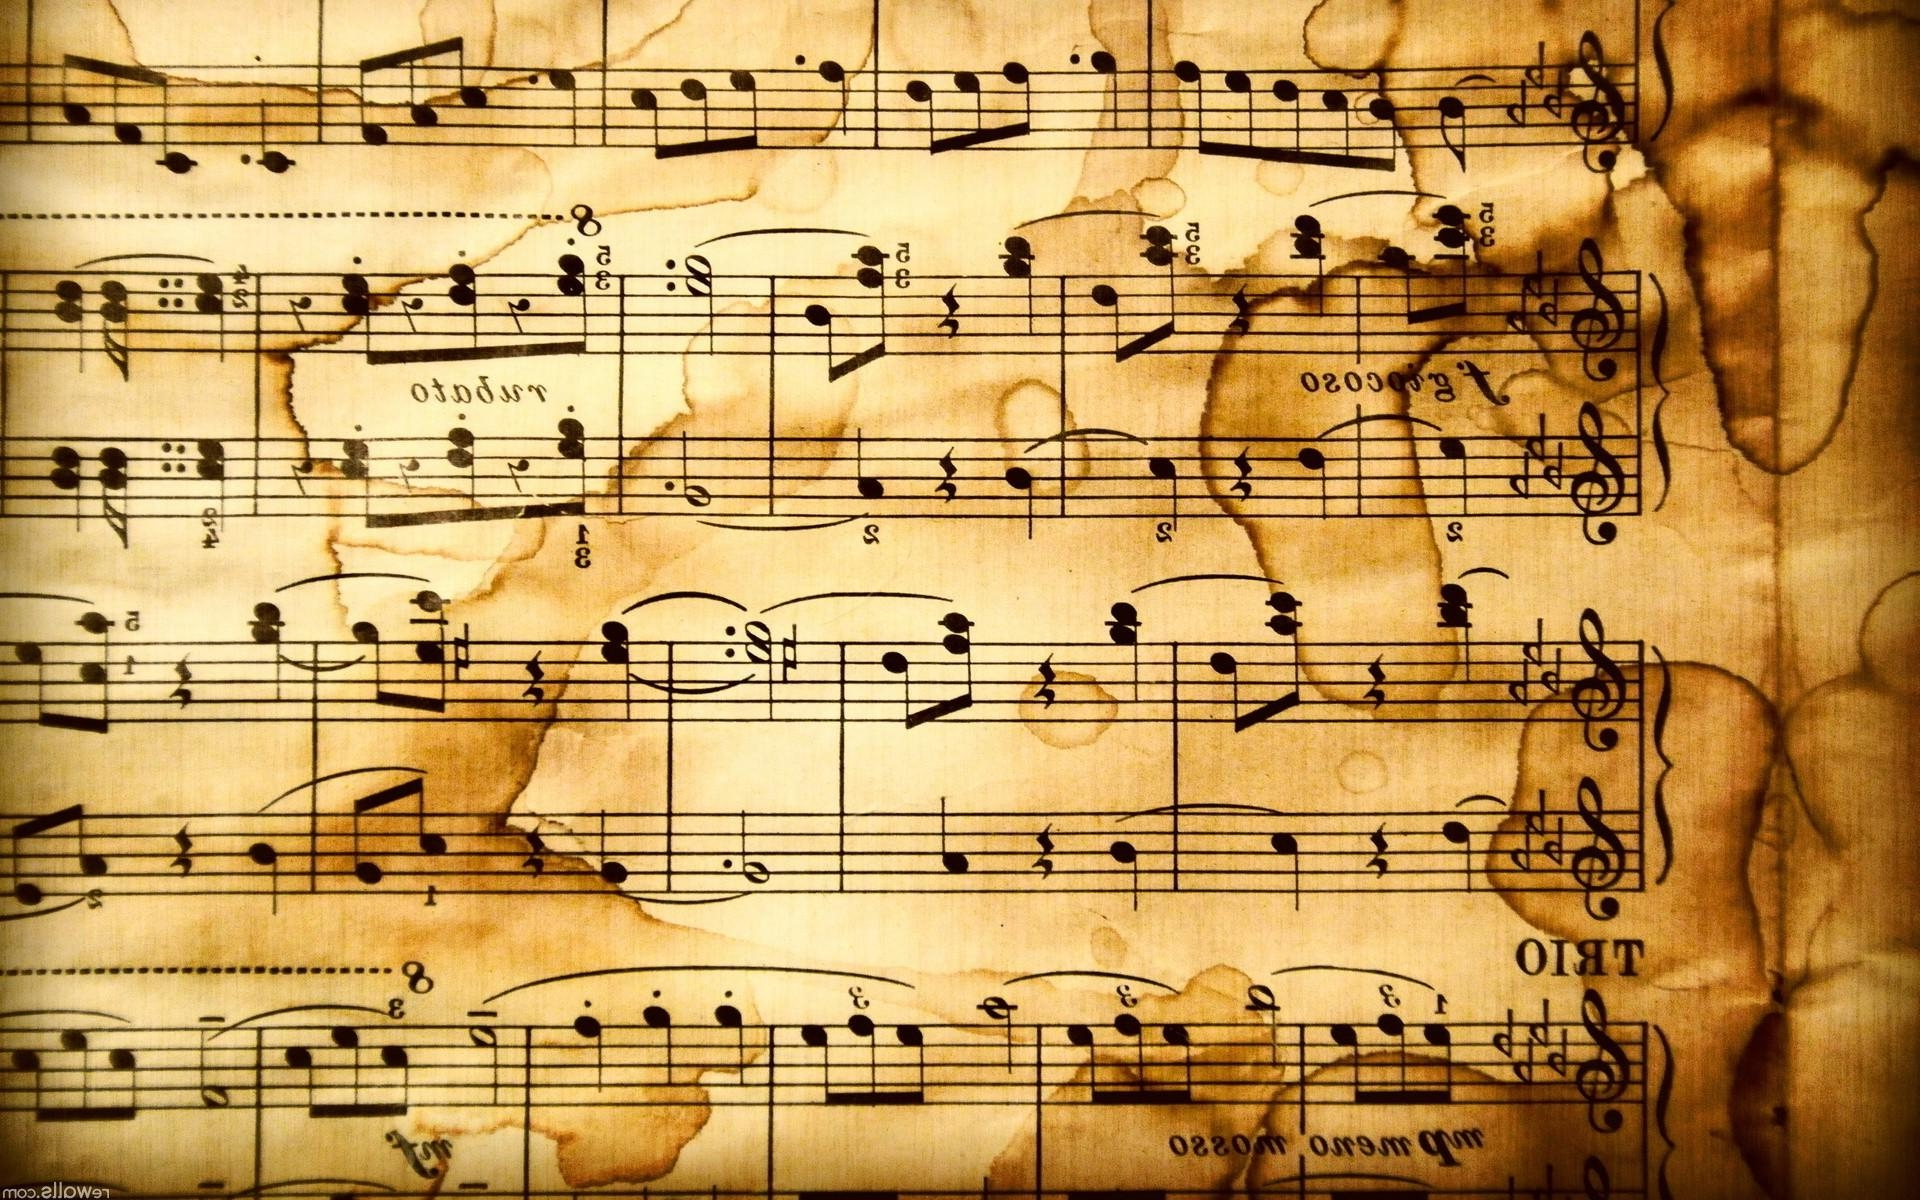 0 Notes Rustic Hd Music Notes Wallpaper Music Notes